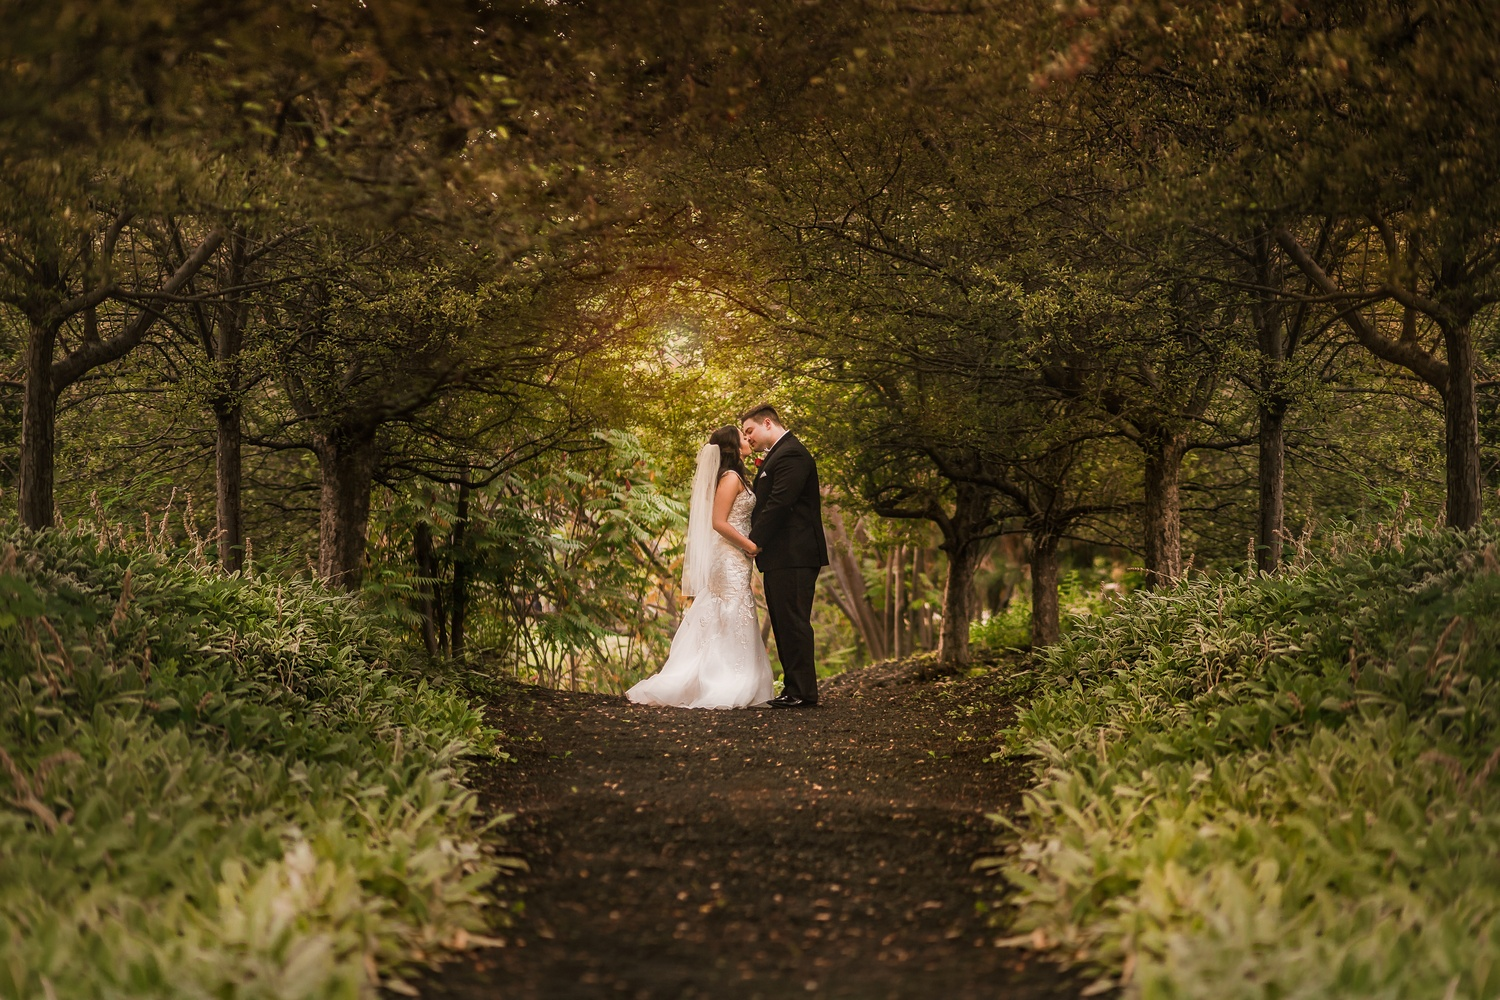 The Golden Hour Kiss by Austin Williams